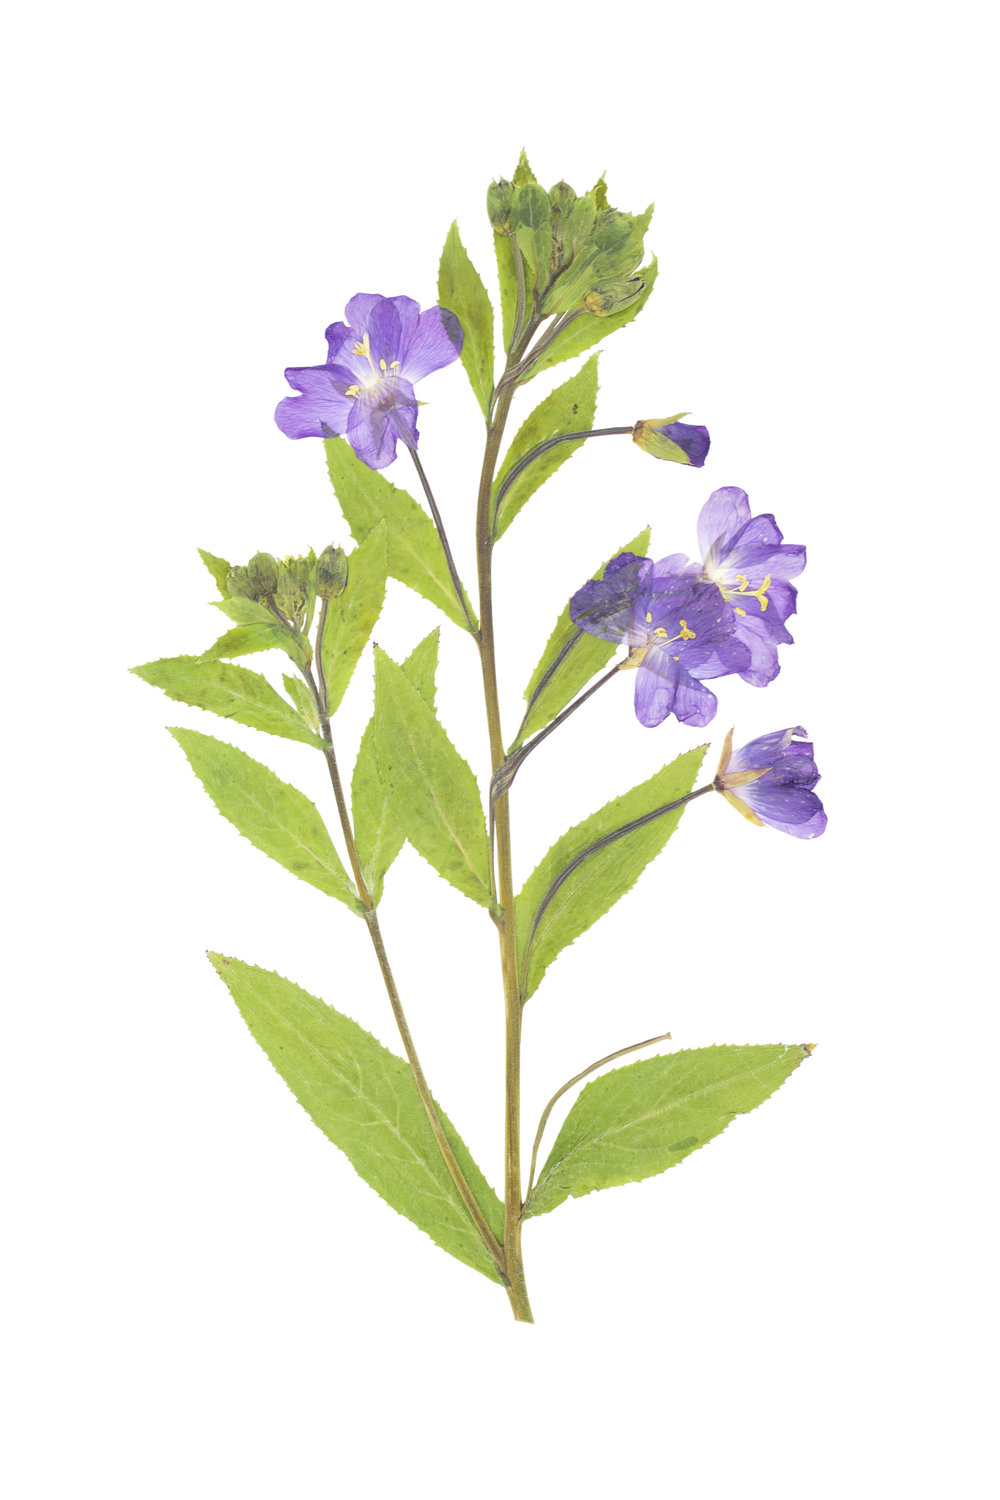 Great Willowherb / Epilobium hirsutum